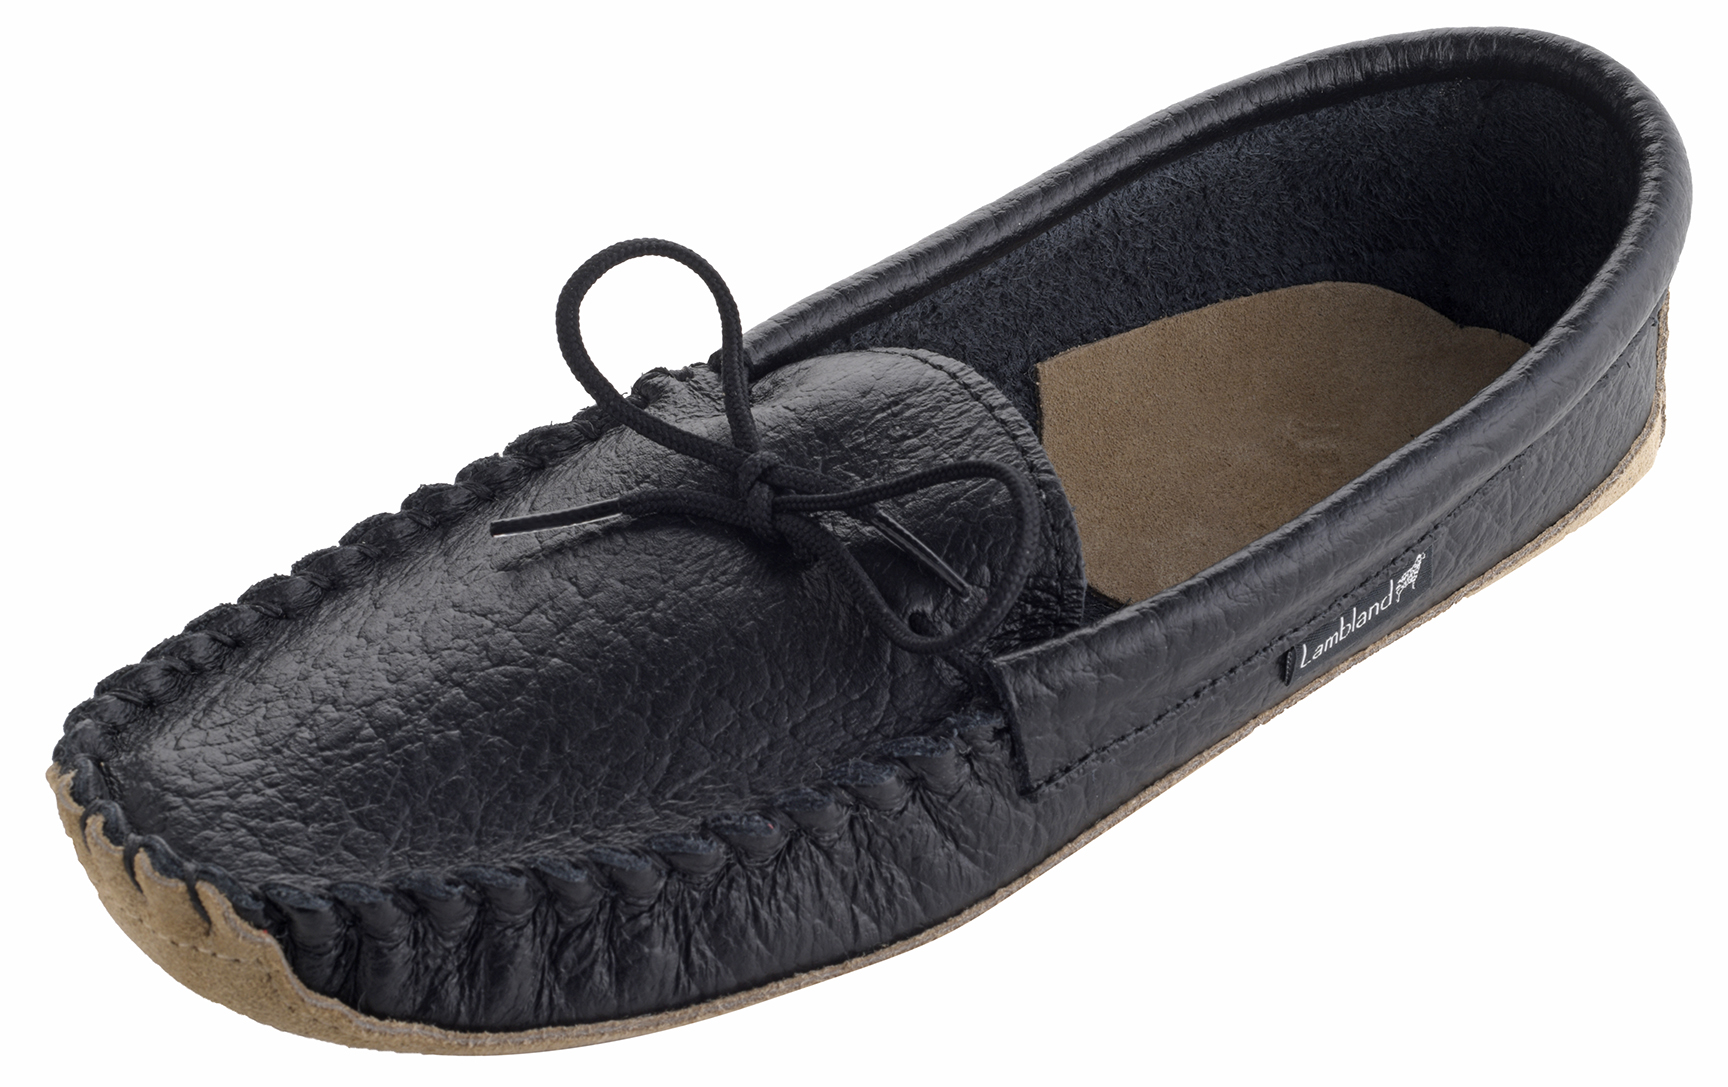 Leather-Earthing-Grounding-Moccasin-Slippers-Made-in-the-UK-Mens-amp-Ladies thumbnail 11